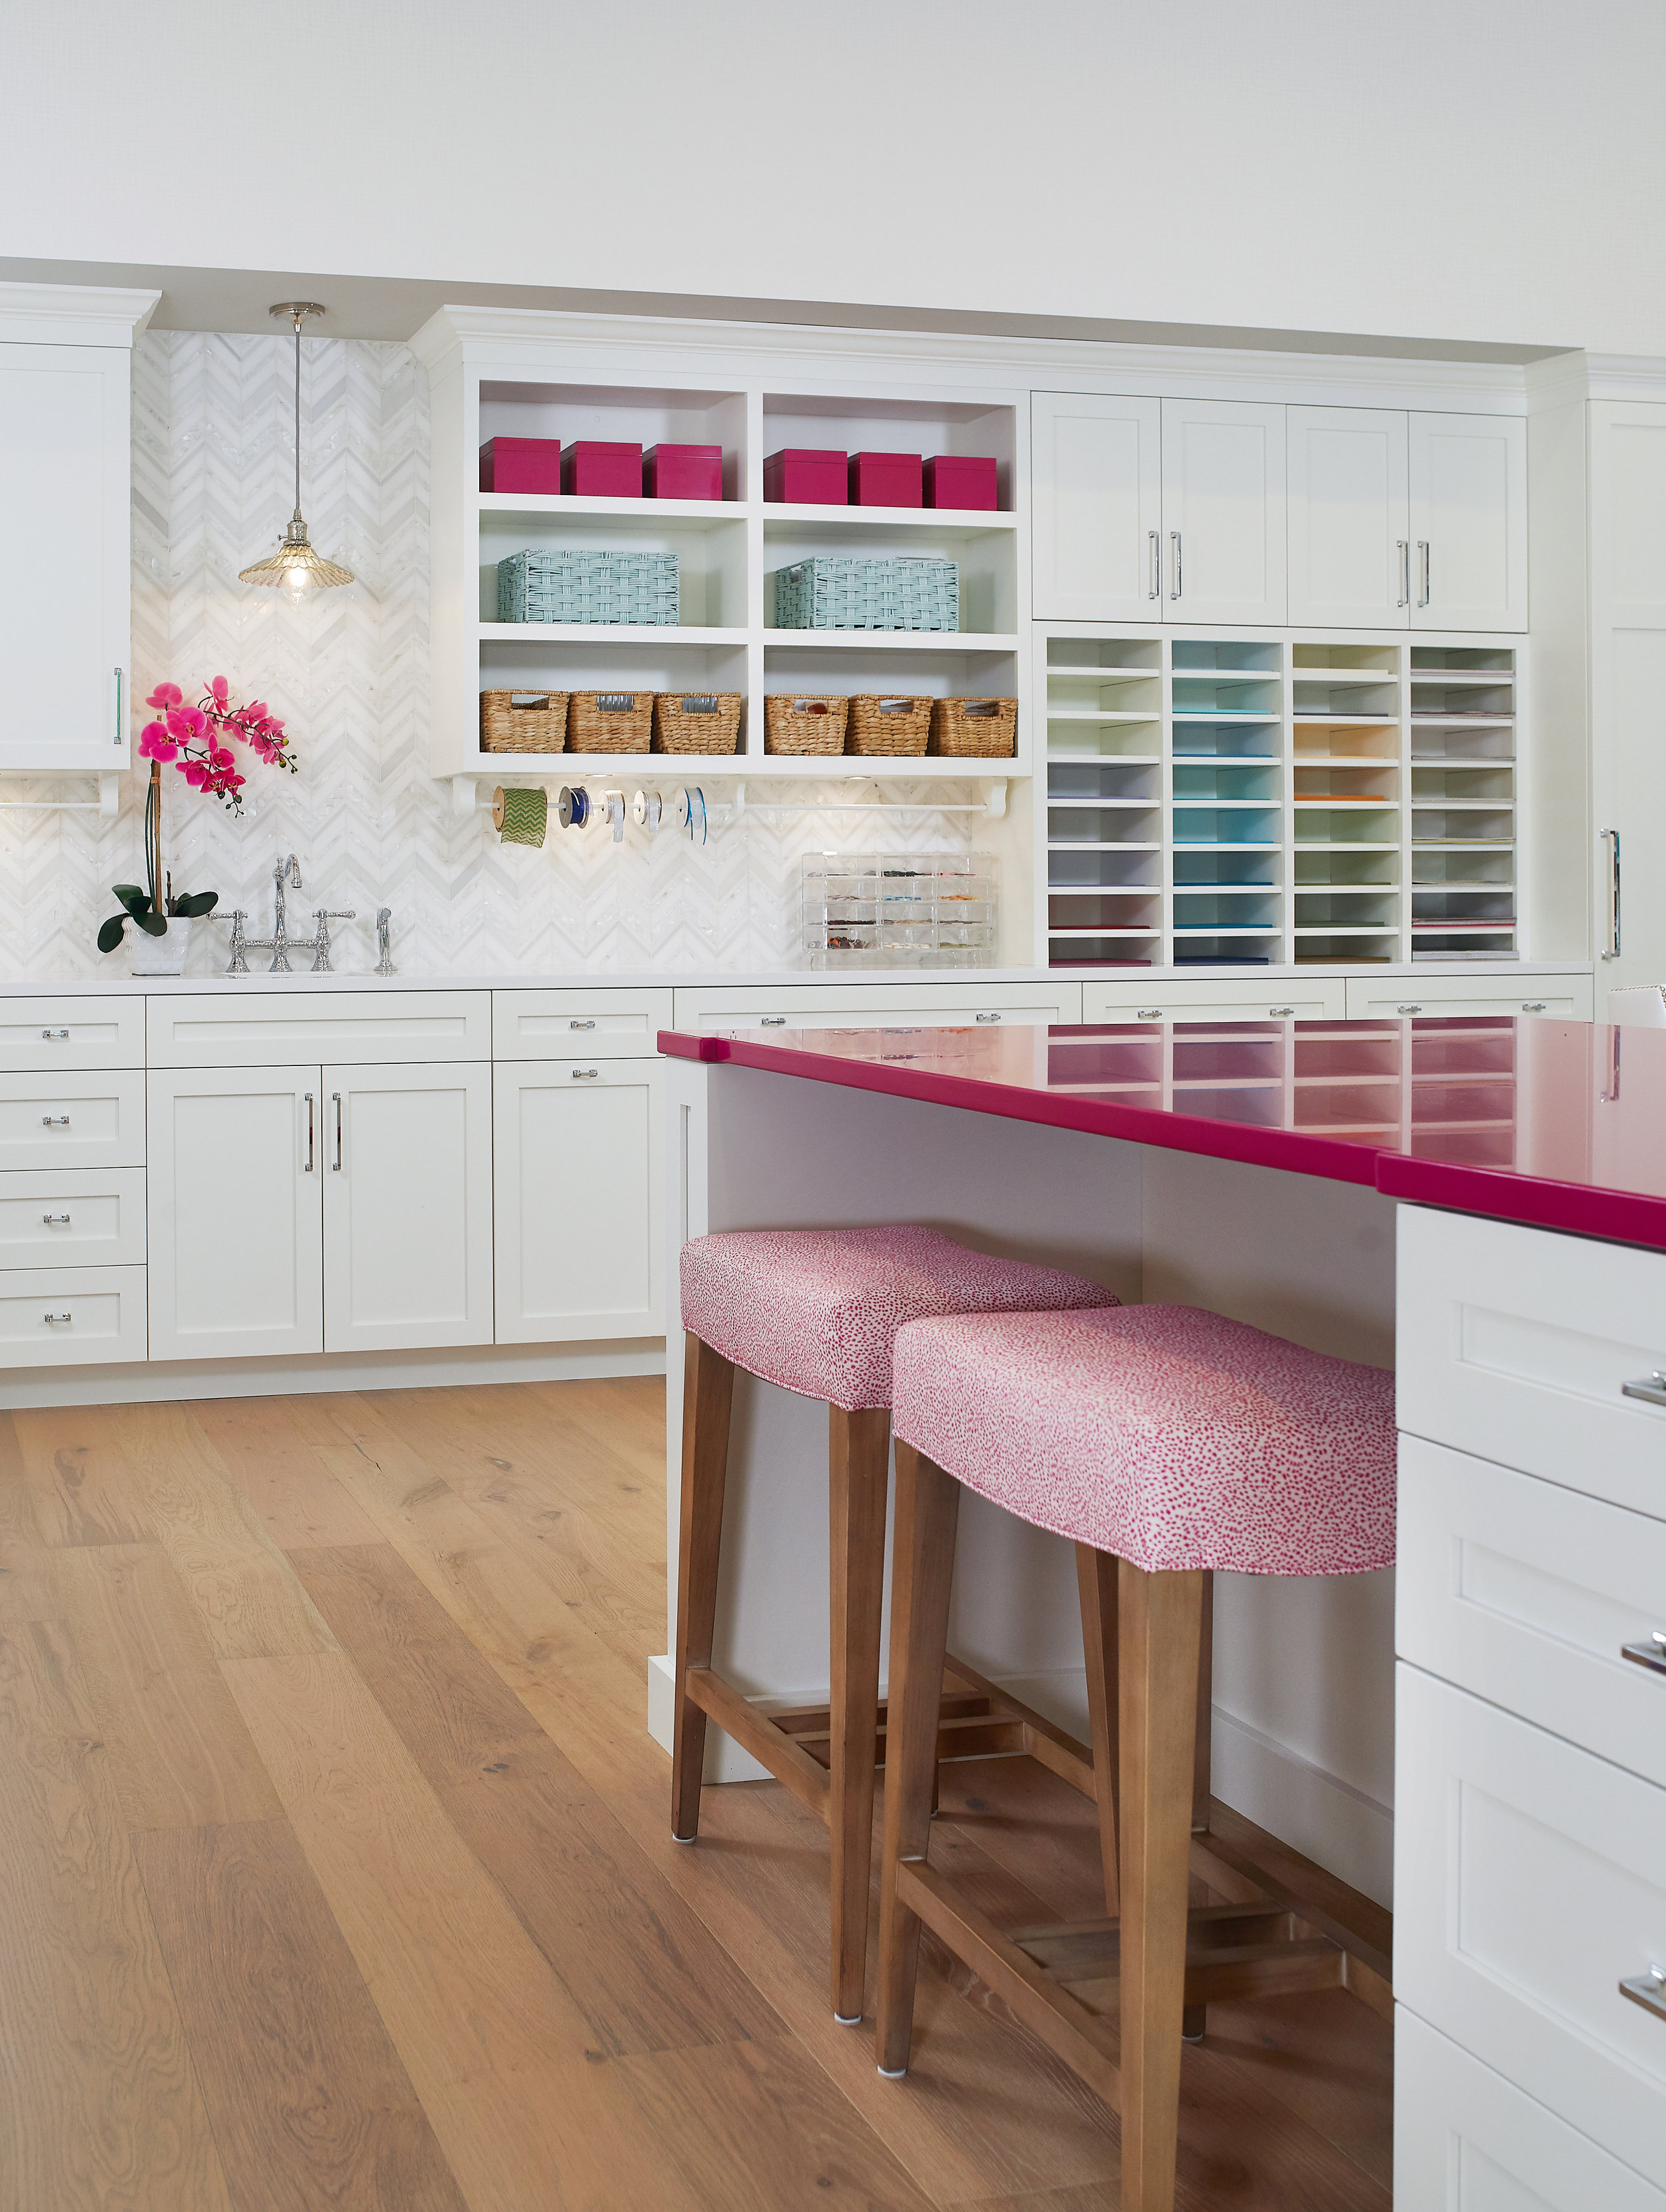 Pink countertop - white cabinetry